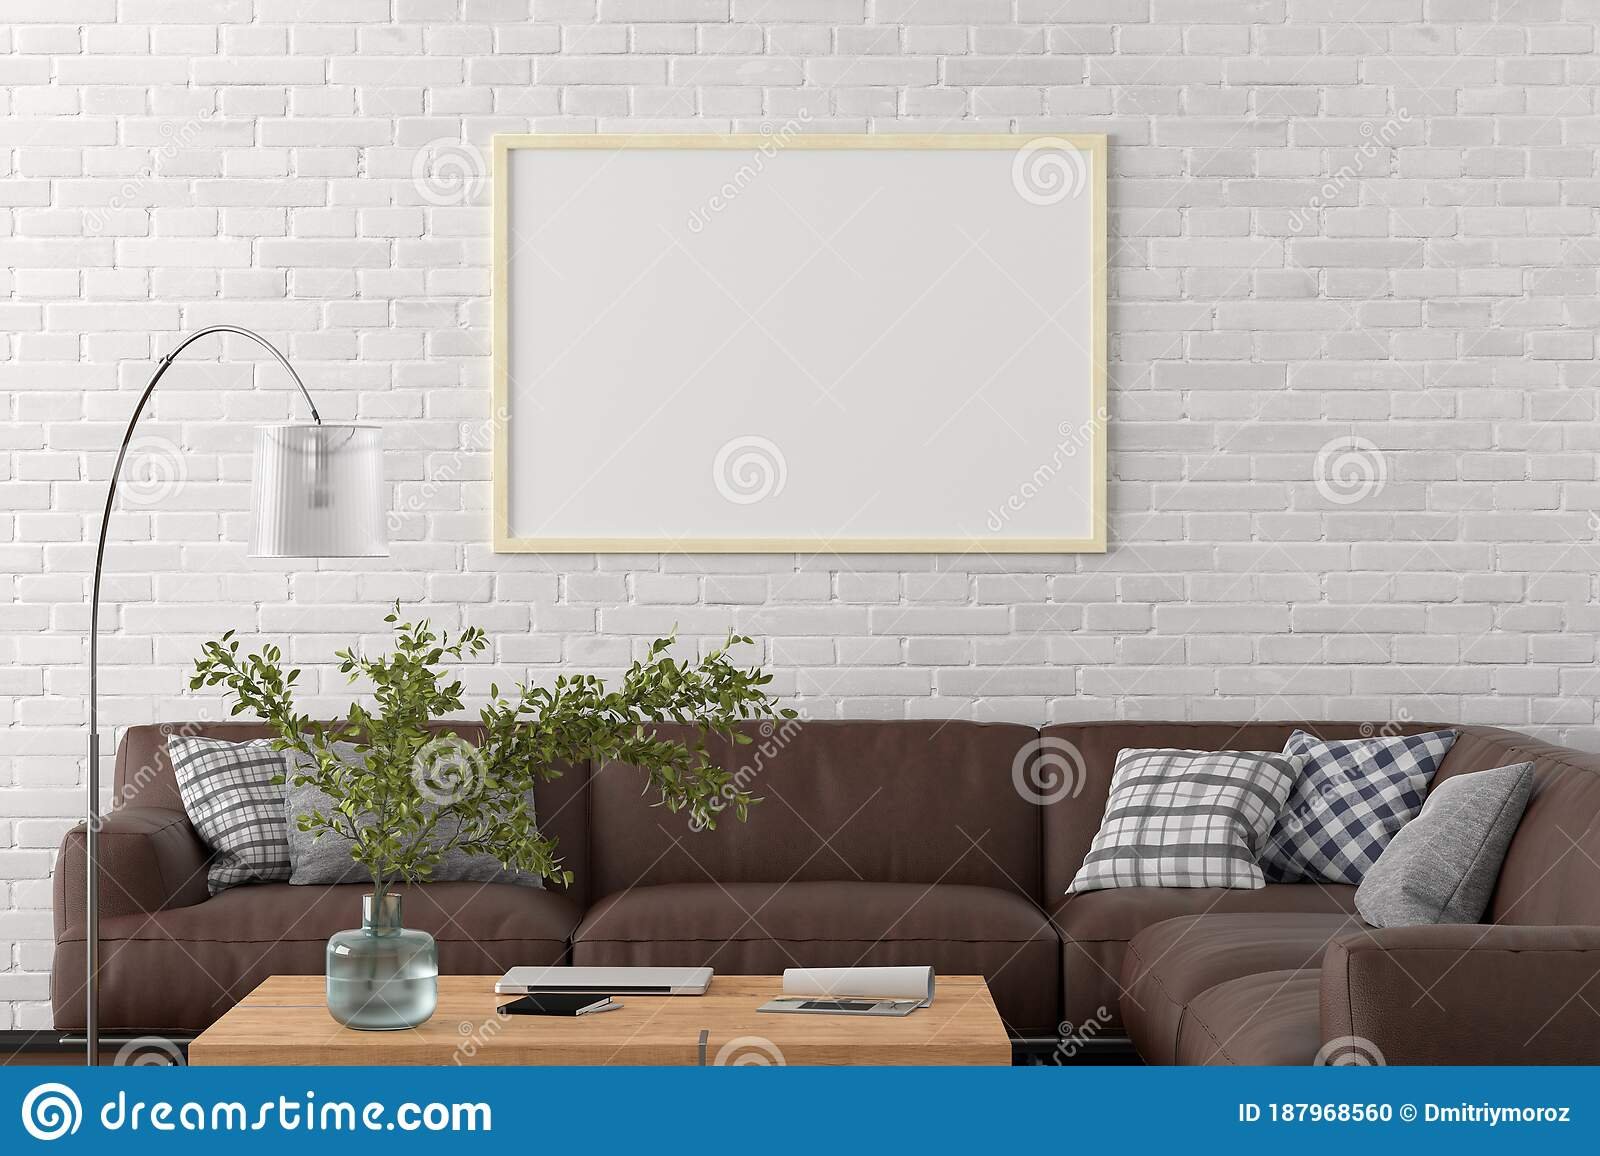 Blank Horizontal Poster Frame On White Brick Wall In Interior Of Living Room With Clipping Path Around Poster Stock Illustration Illustration Of Indoor Creative 187968560